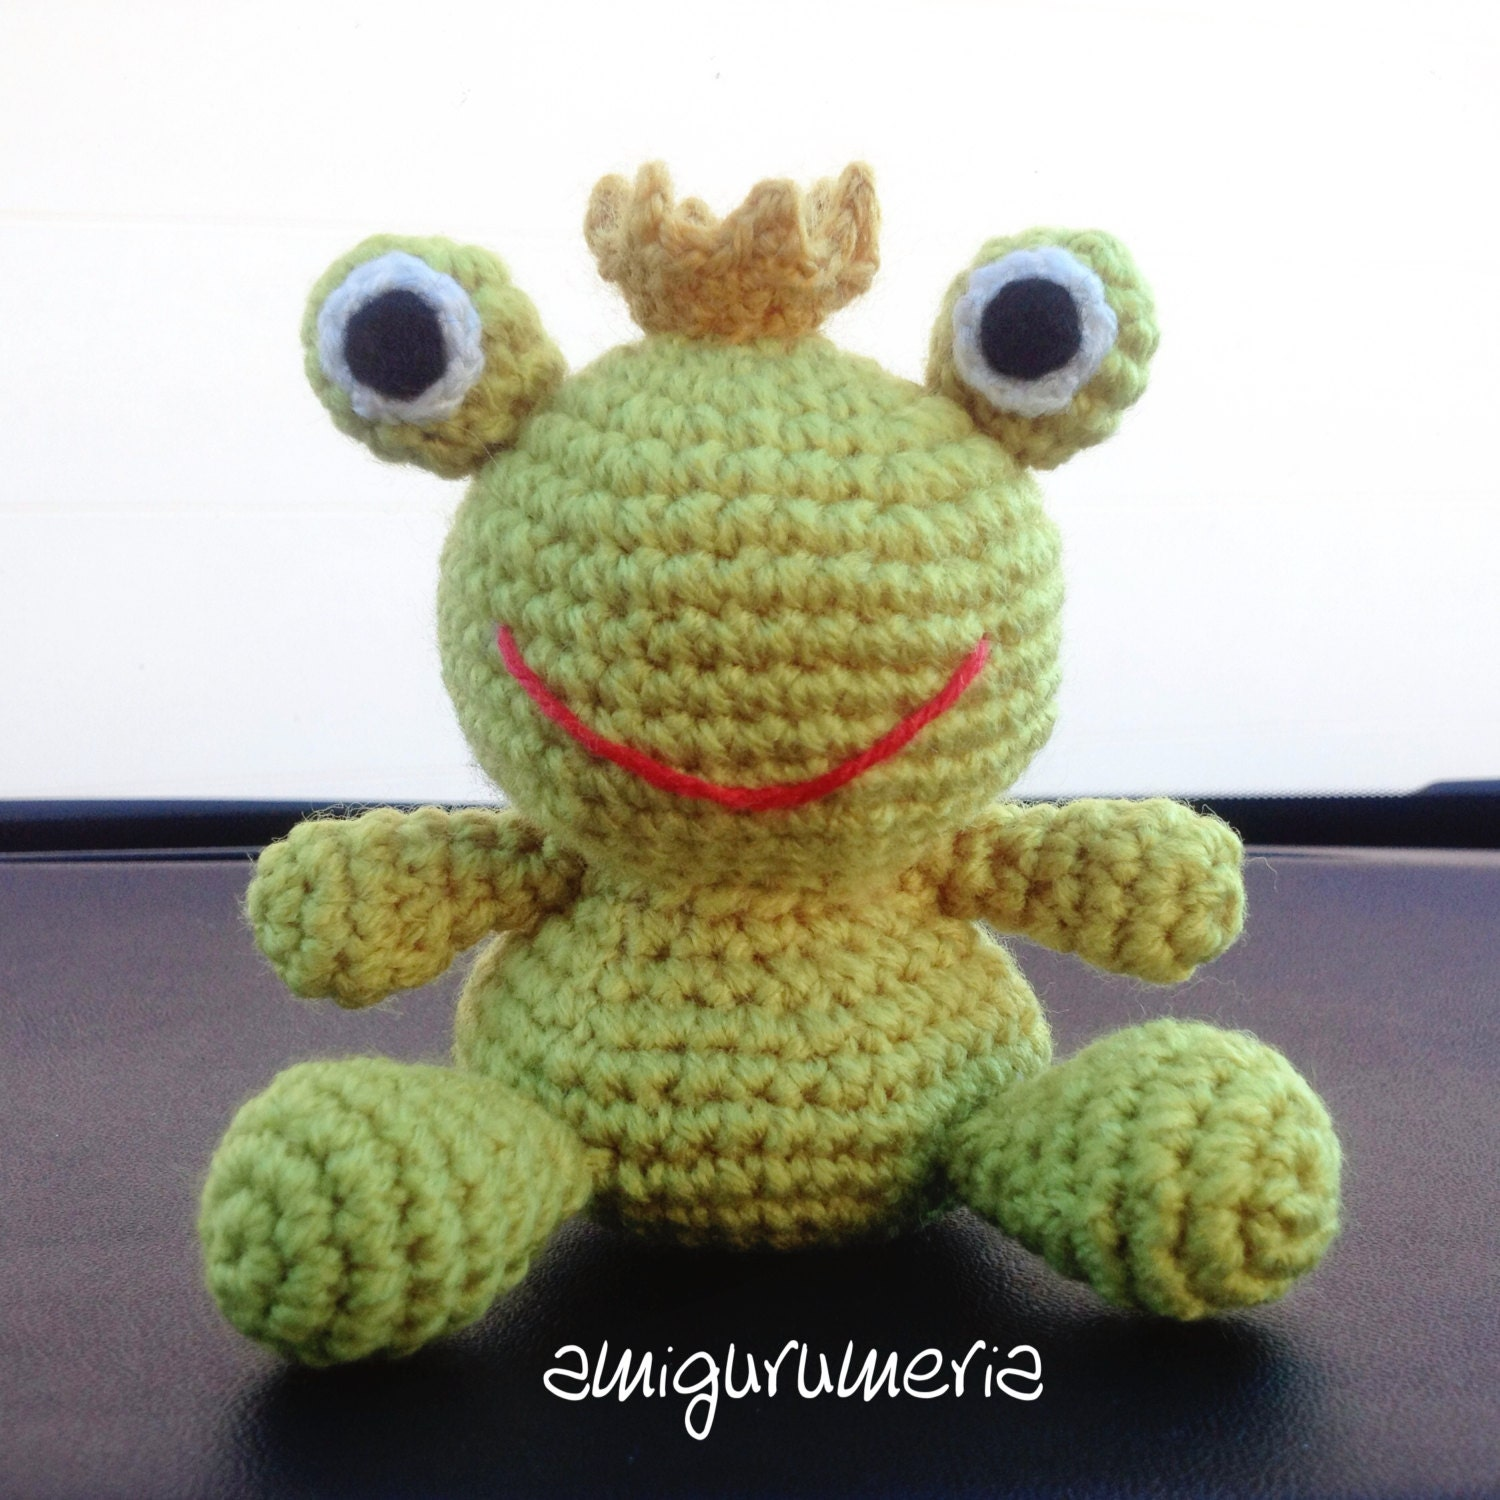 learn how to crochet basic beginner amigurumi smiley